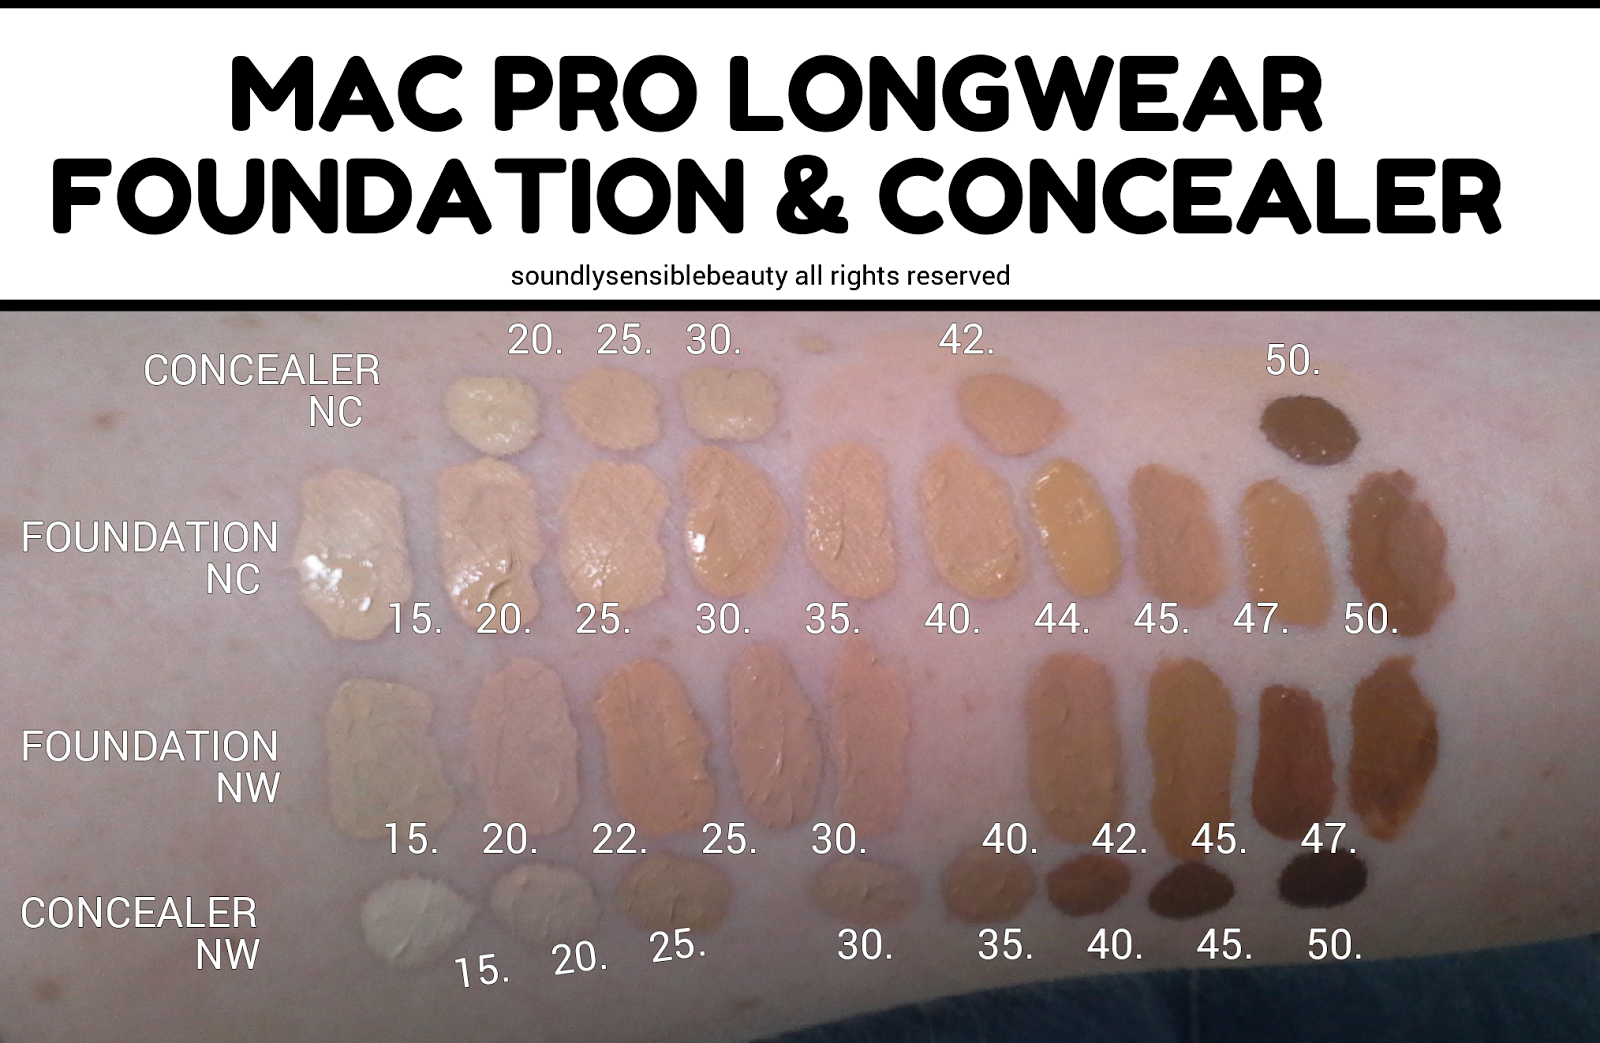 Pro Longwear Foundation by MAC #5